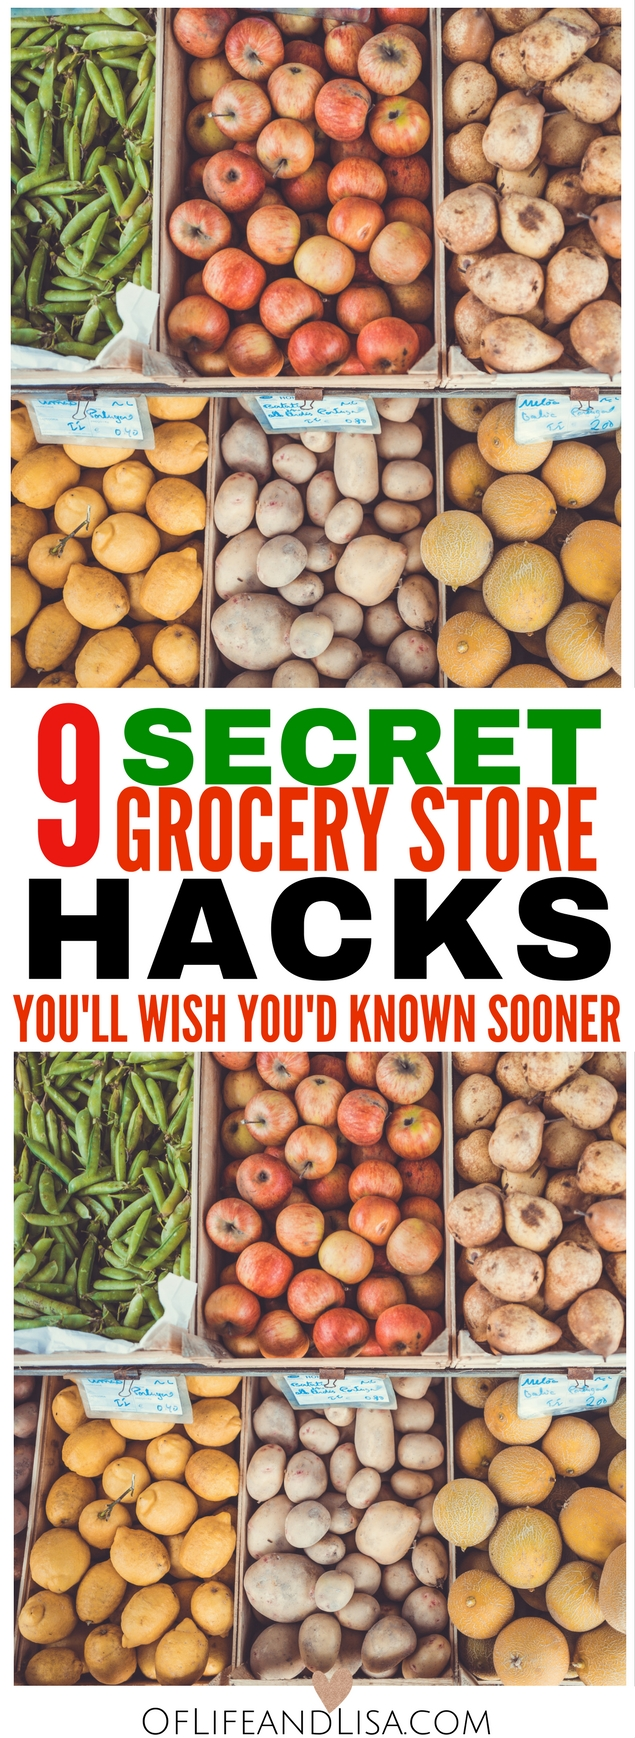 Looking for ways to save money at the grocery store? Check out this list of 9 grocery store hacks that will change how you shop forever.